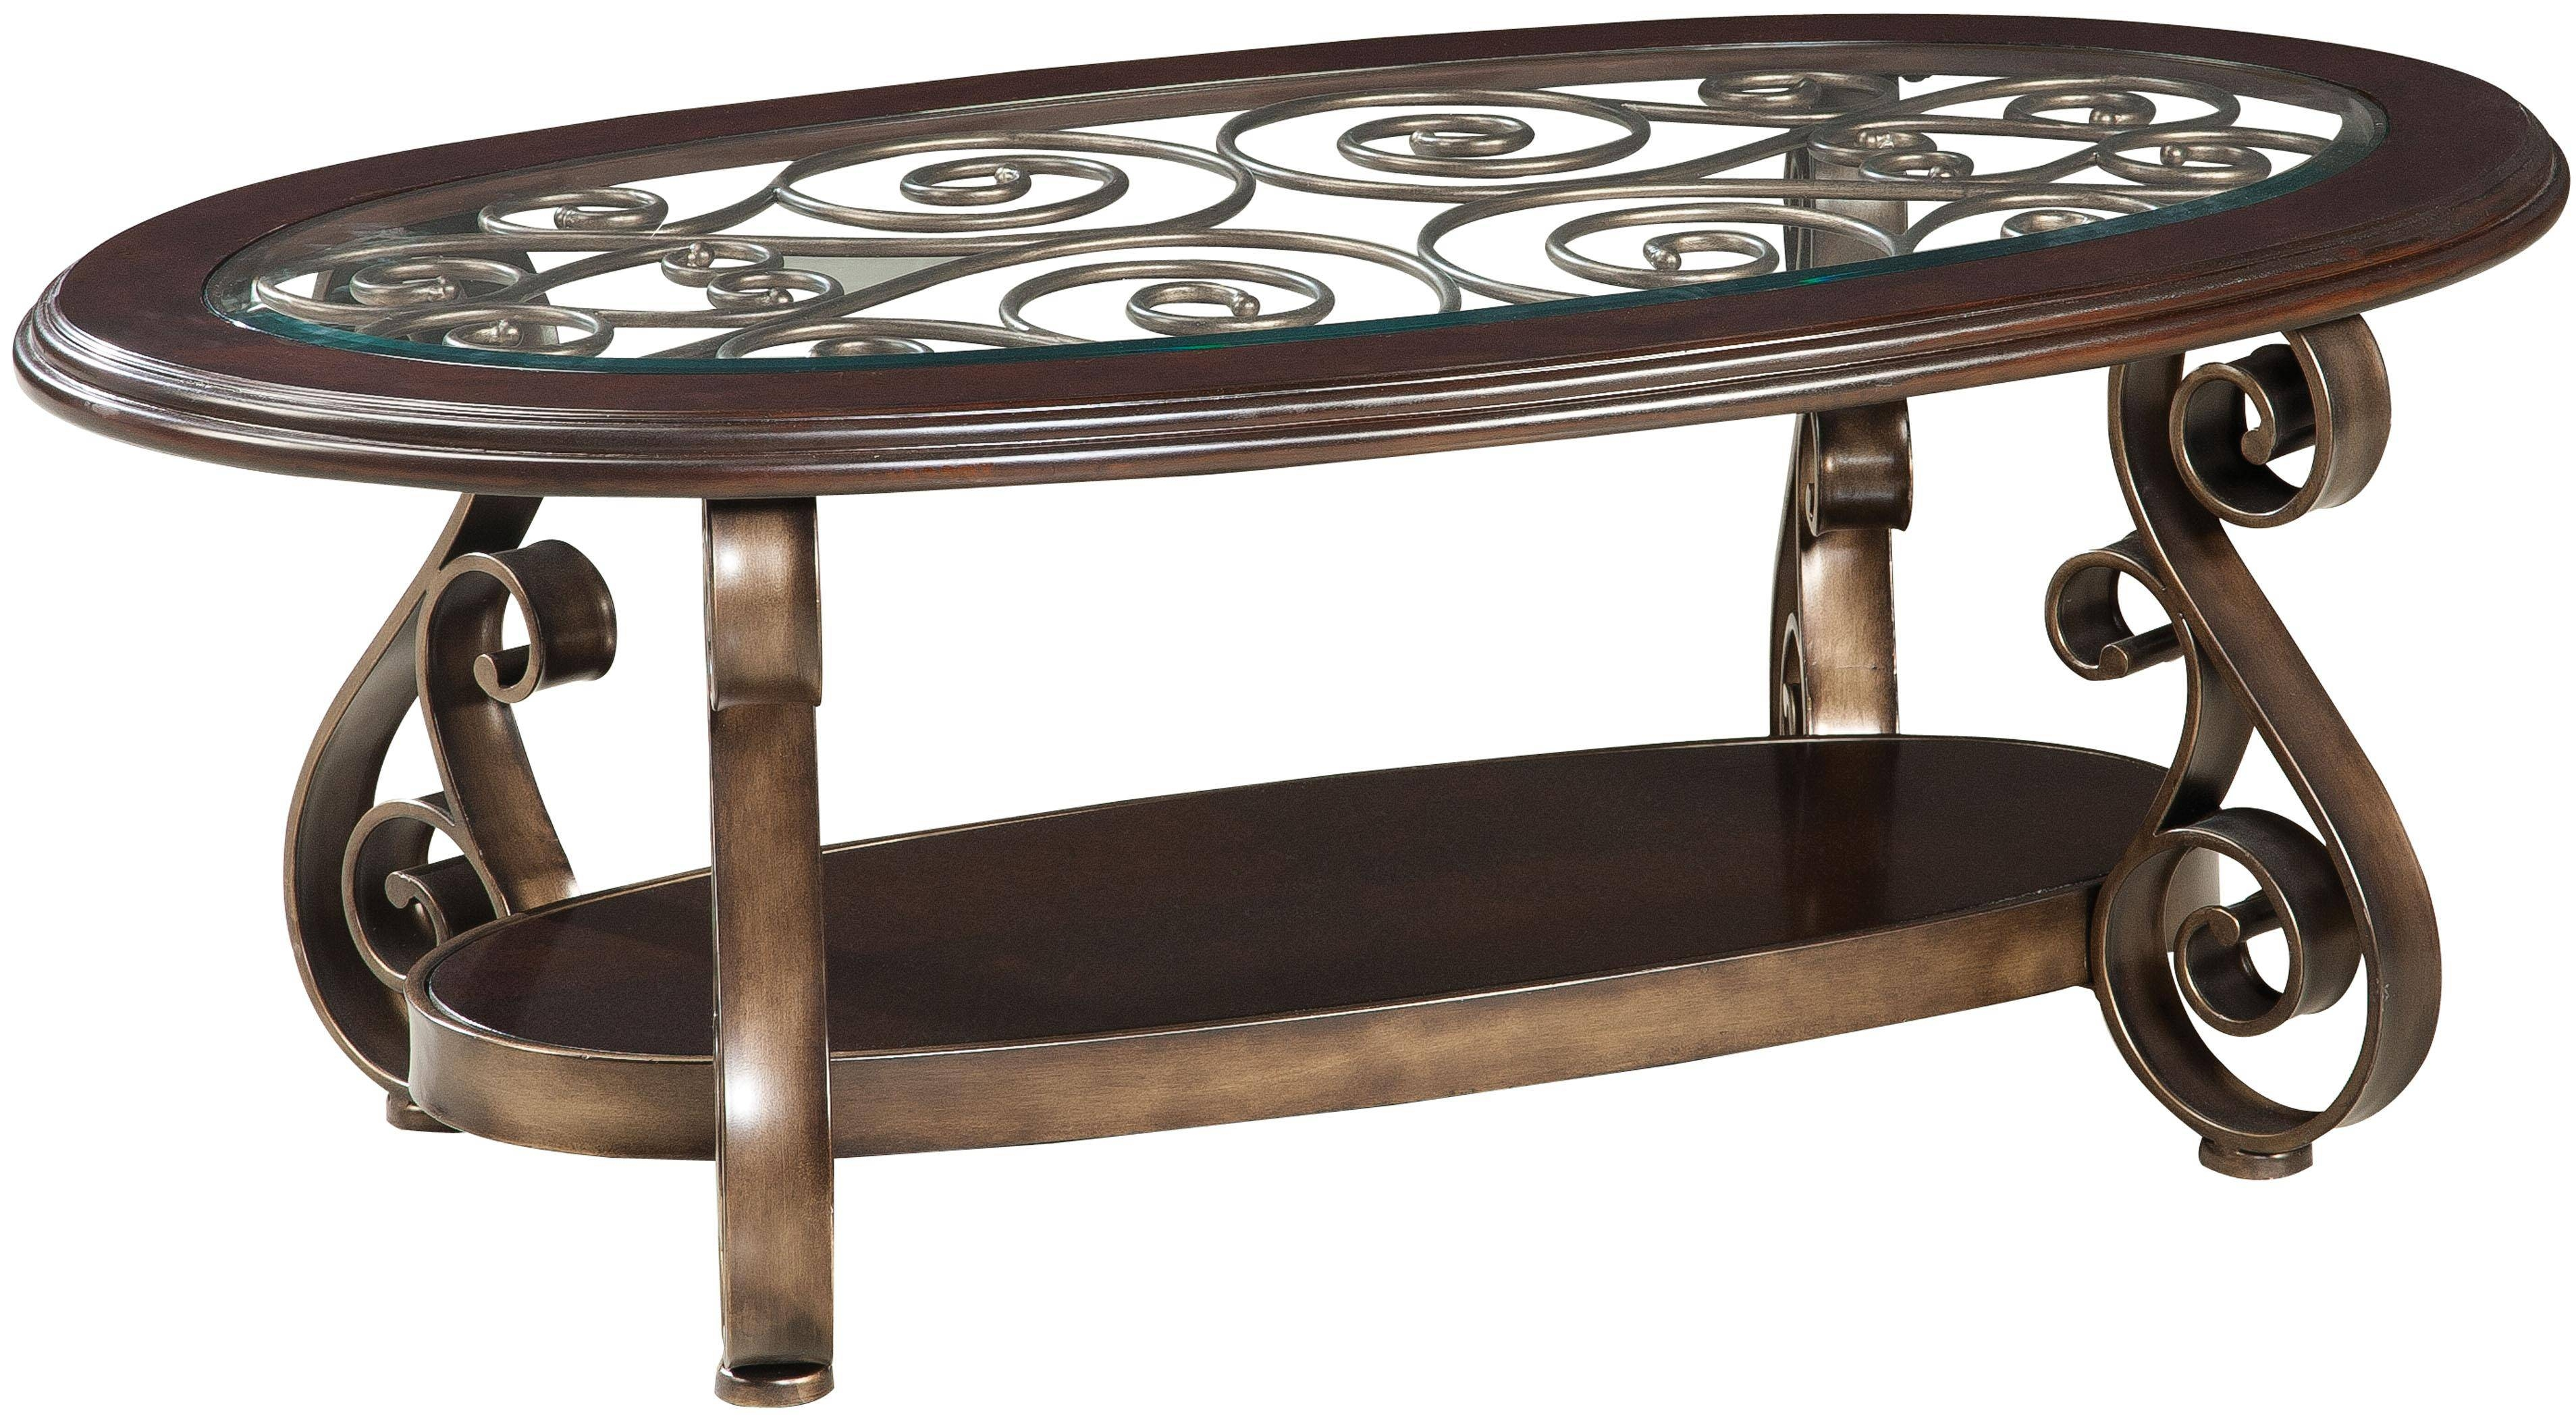 Oval Wood Coffee Table With Glass Top | Coffee Tables Decoration for Dark Wood Coffee Tables With Glass Top (Image 21 of 30)